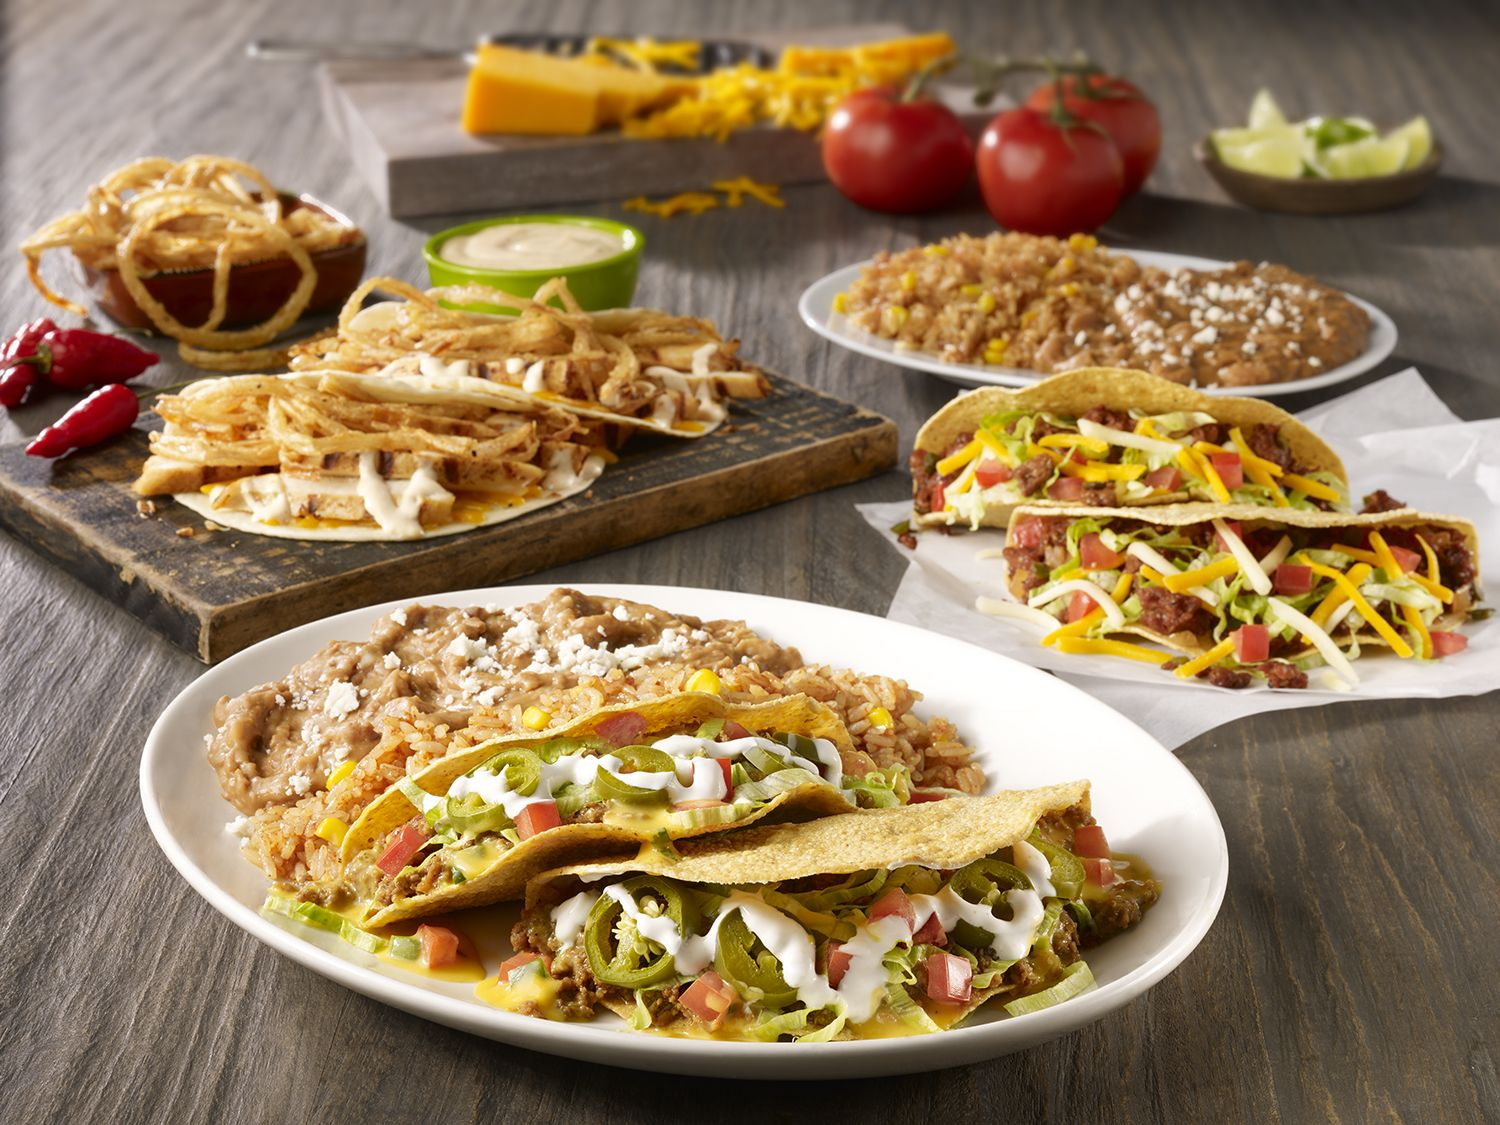 On The Border Becomes First National Mexican Casual Dining Chain to Offer Tacos Featuring Plant-Based Beyond Meat